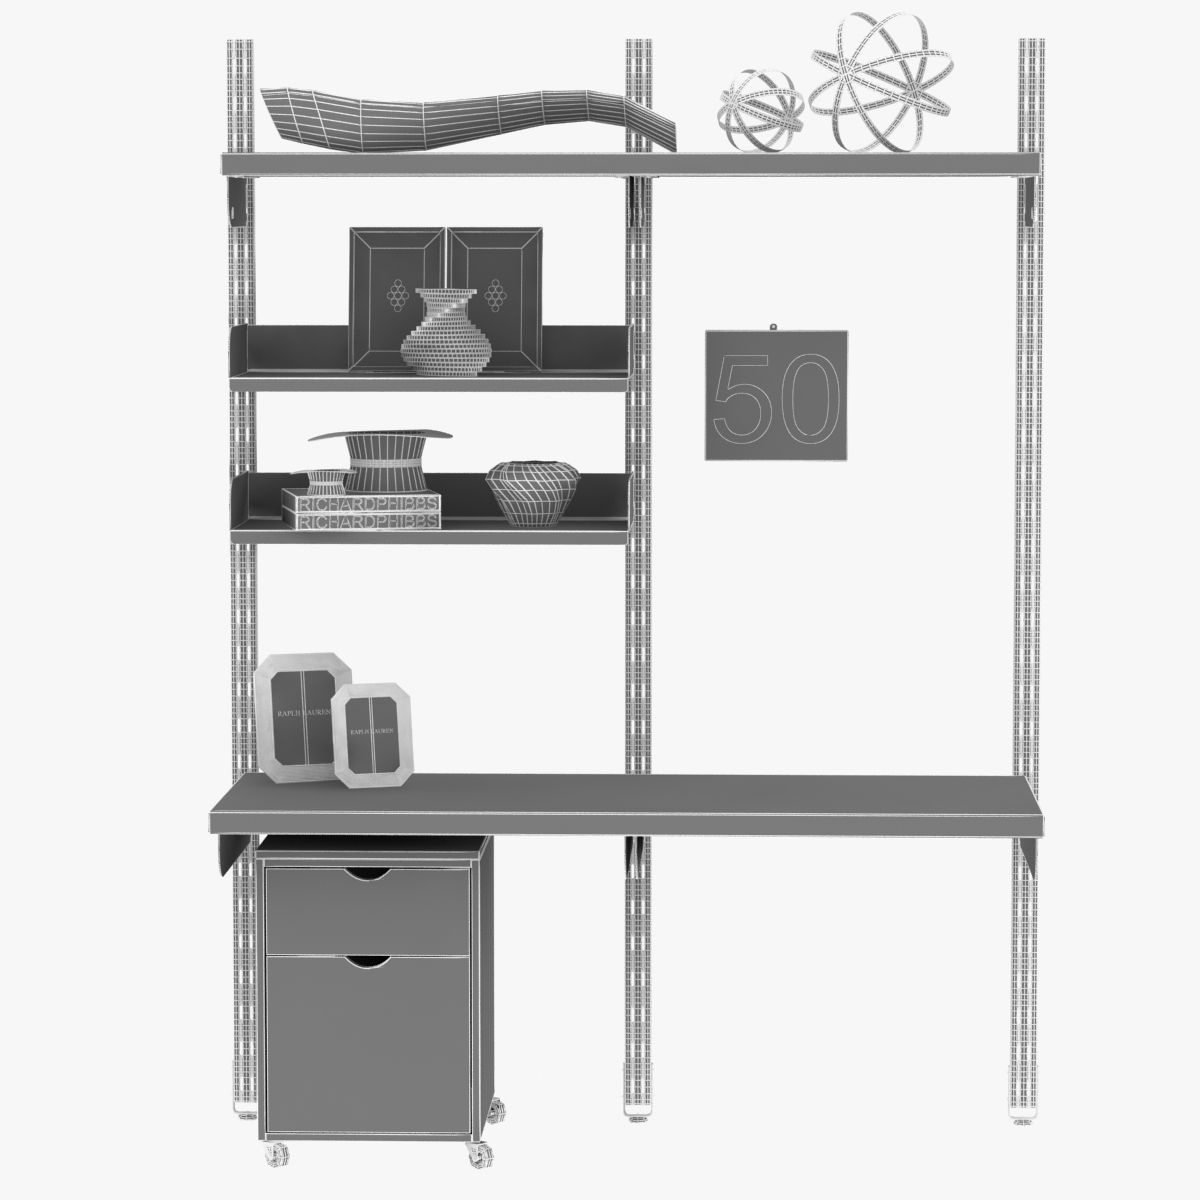 Food Storage Shelving System 3d Model 3ds Max Files Free